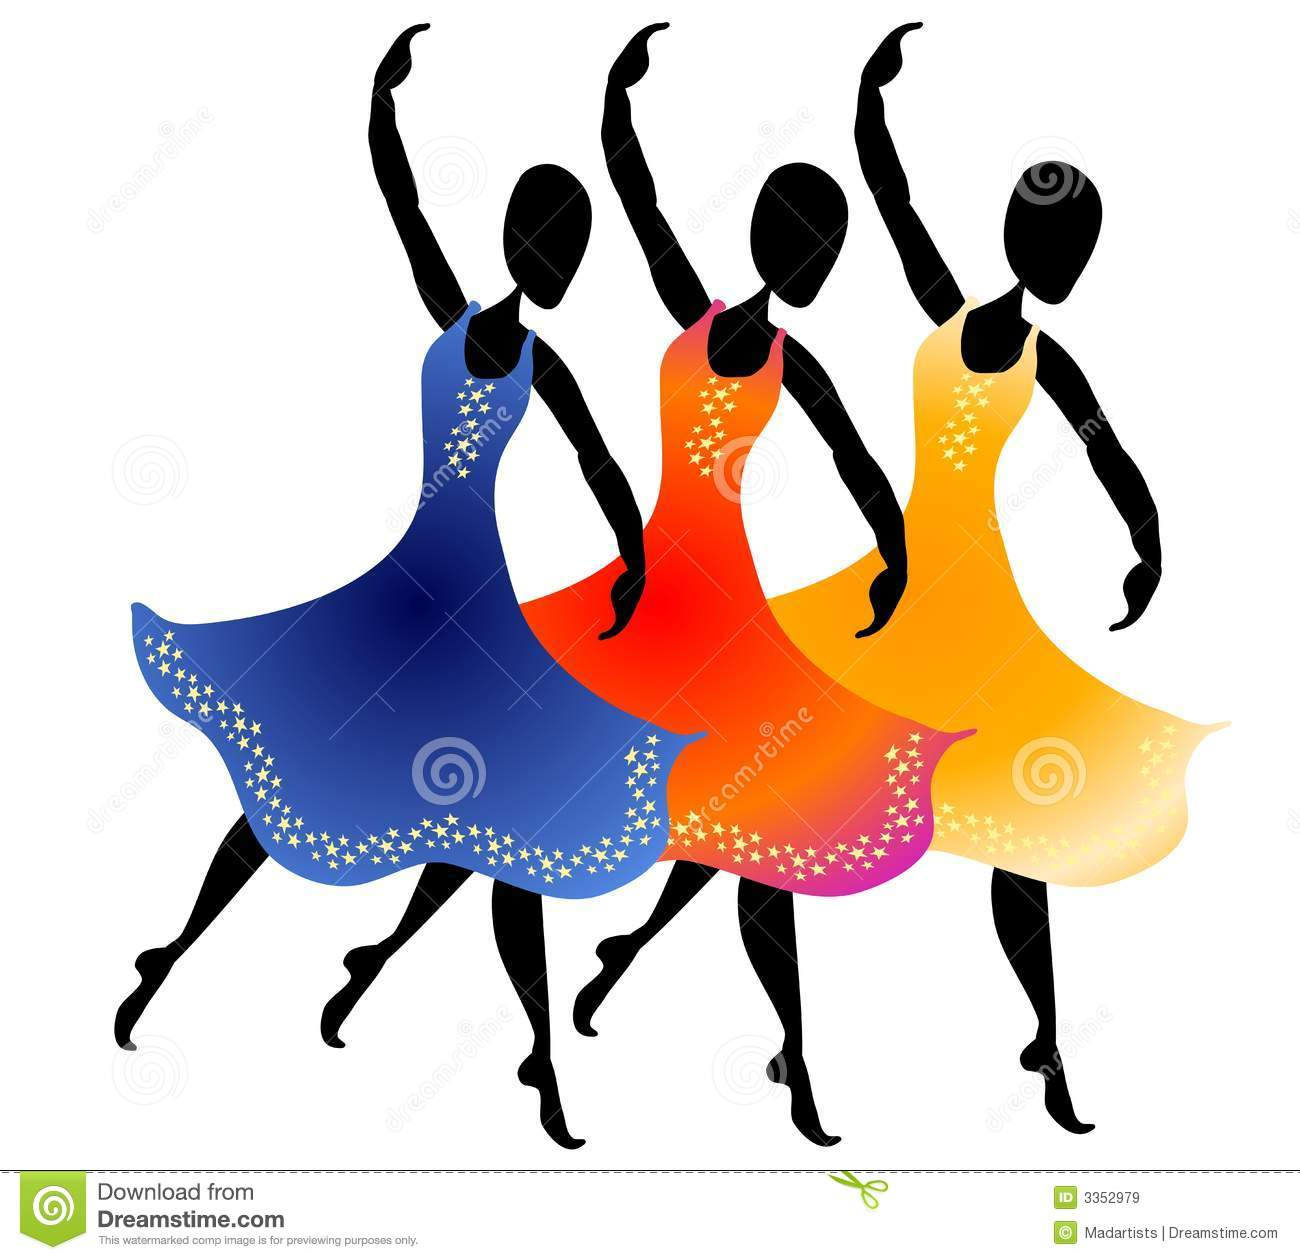 3 women dancing clip art stock illustration illustration of images rh dreamstime com clip art download royalty-free clipart images fonts web art and graphics royalty free clipart images for teachers